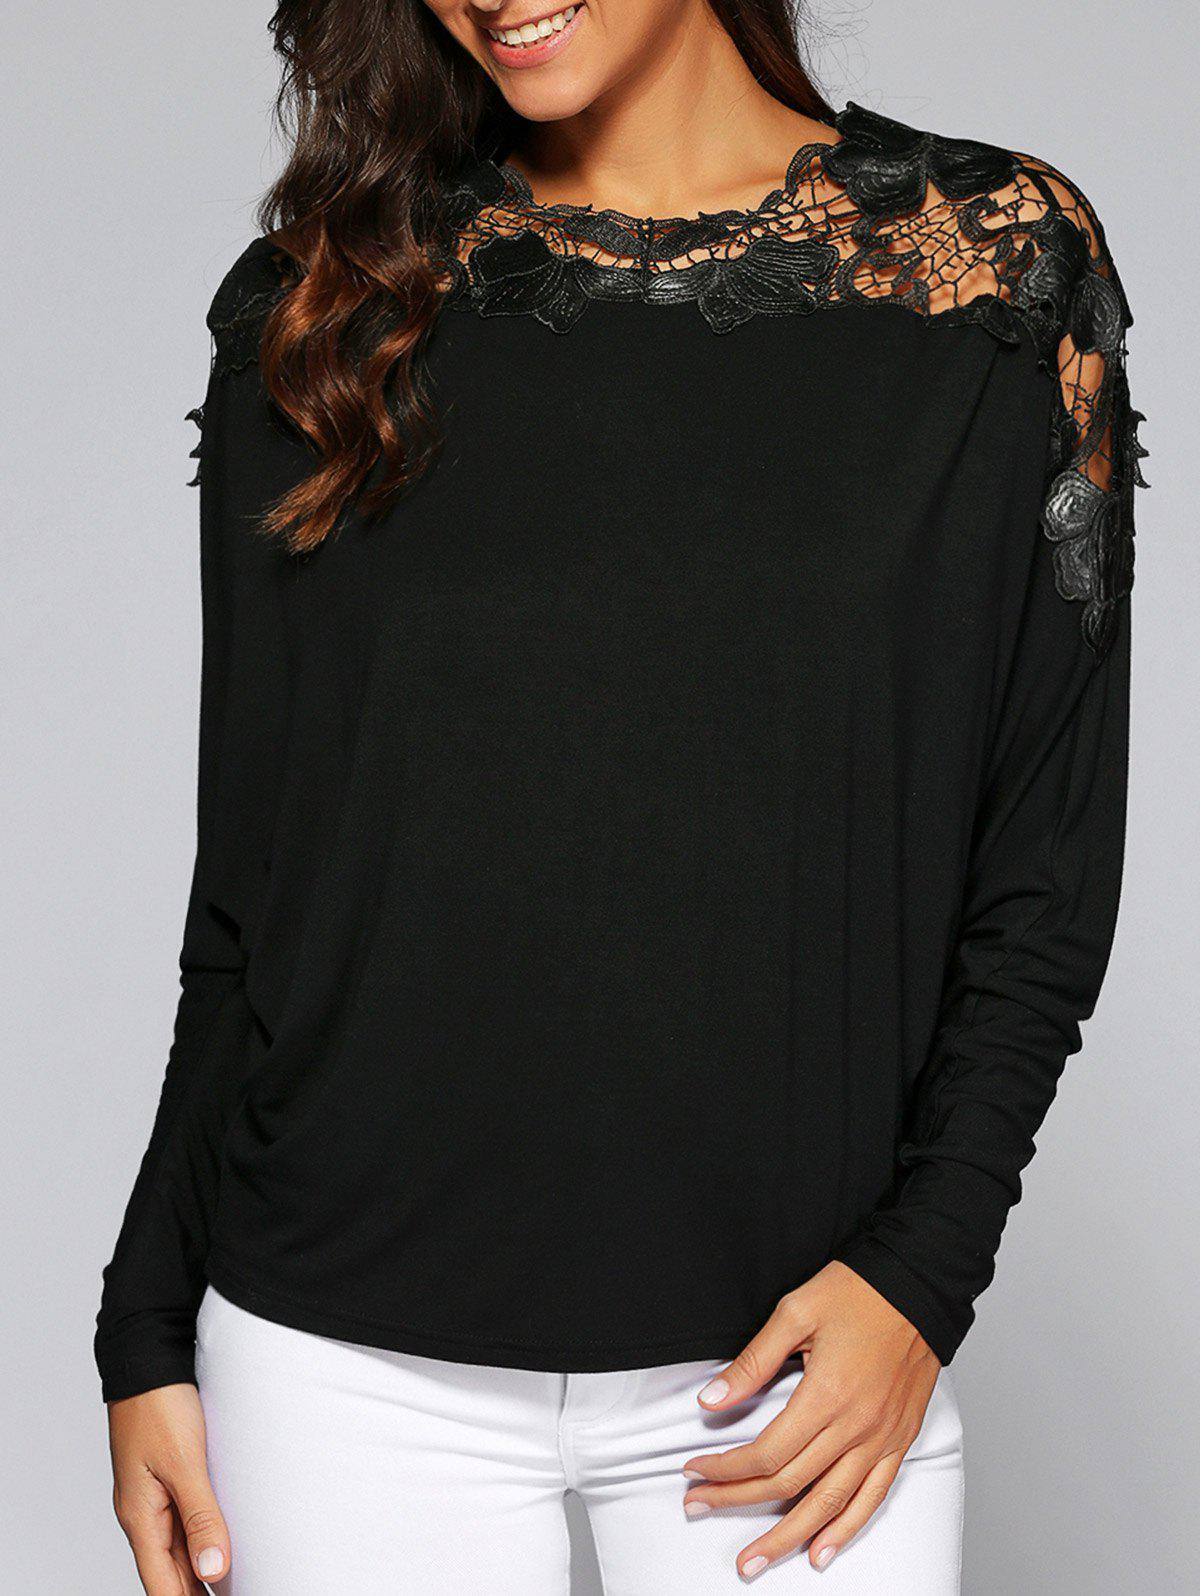 Bat Sleeve Lace Tee mini shatsu bat cape long sleeve tee